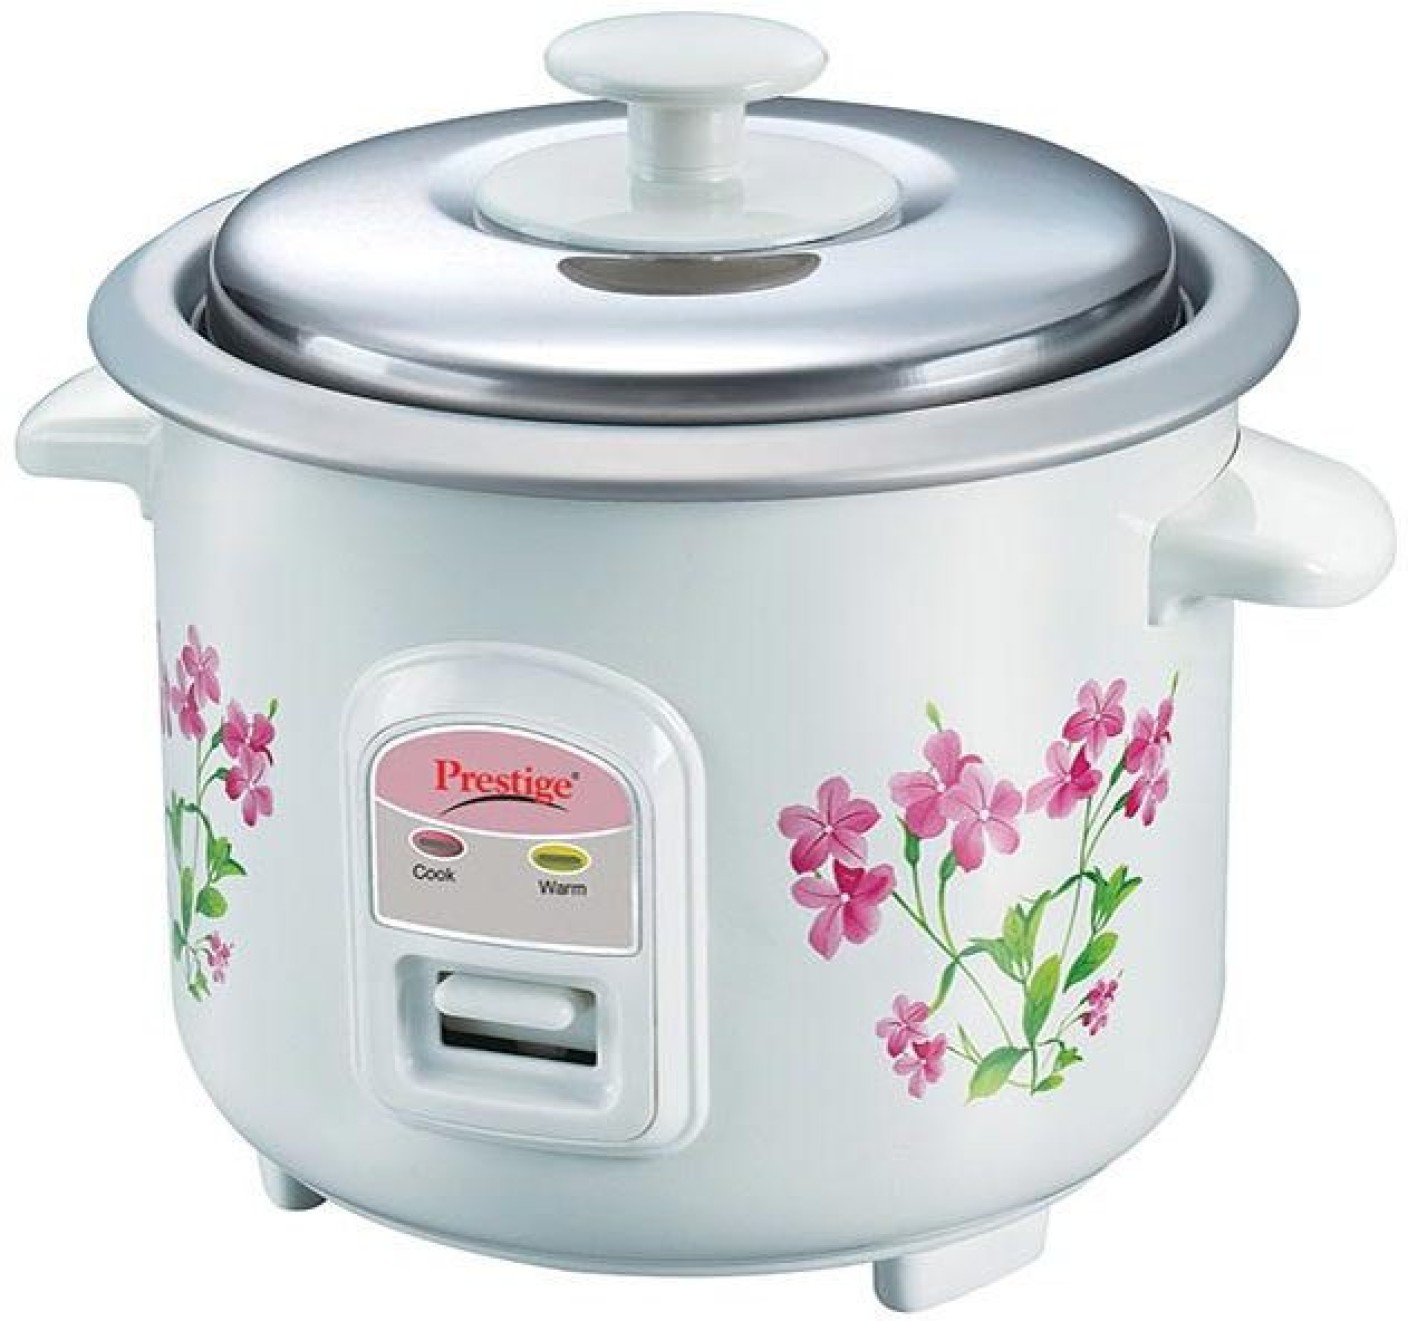 Prestige PRWO 0.6-2 Electric Rice Cooker with Steaming Feature ...